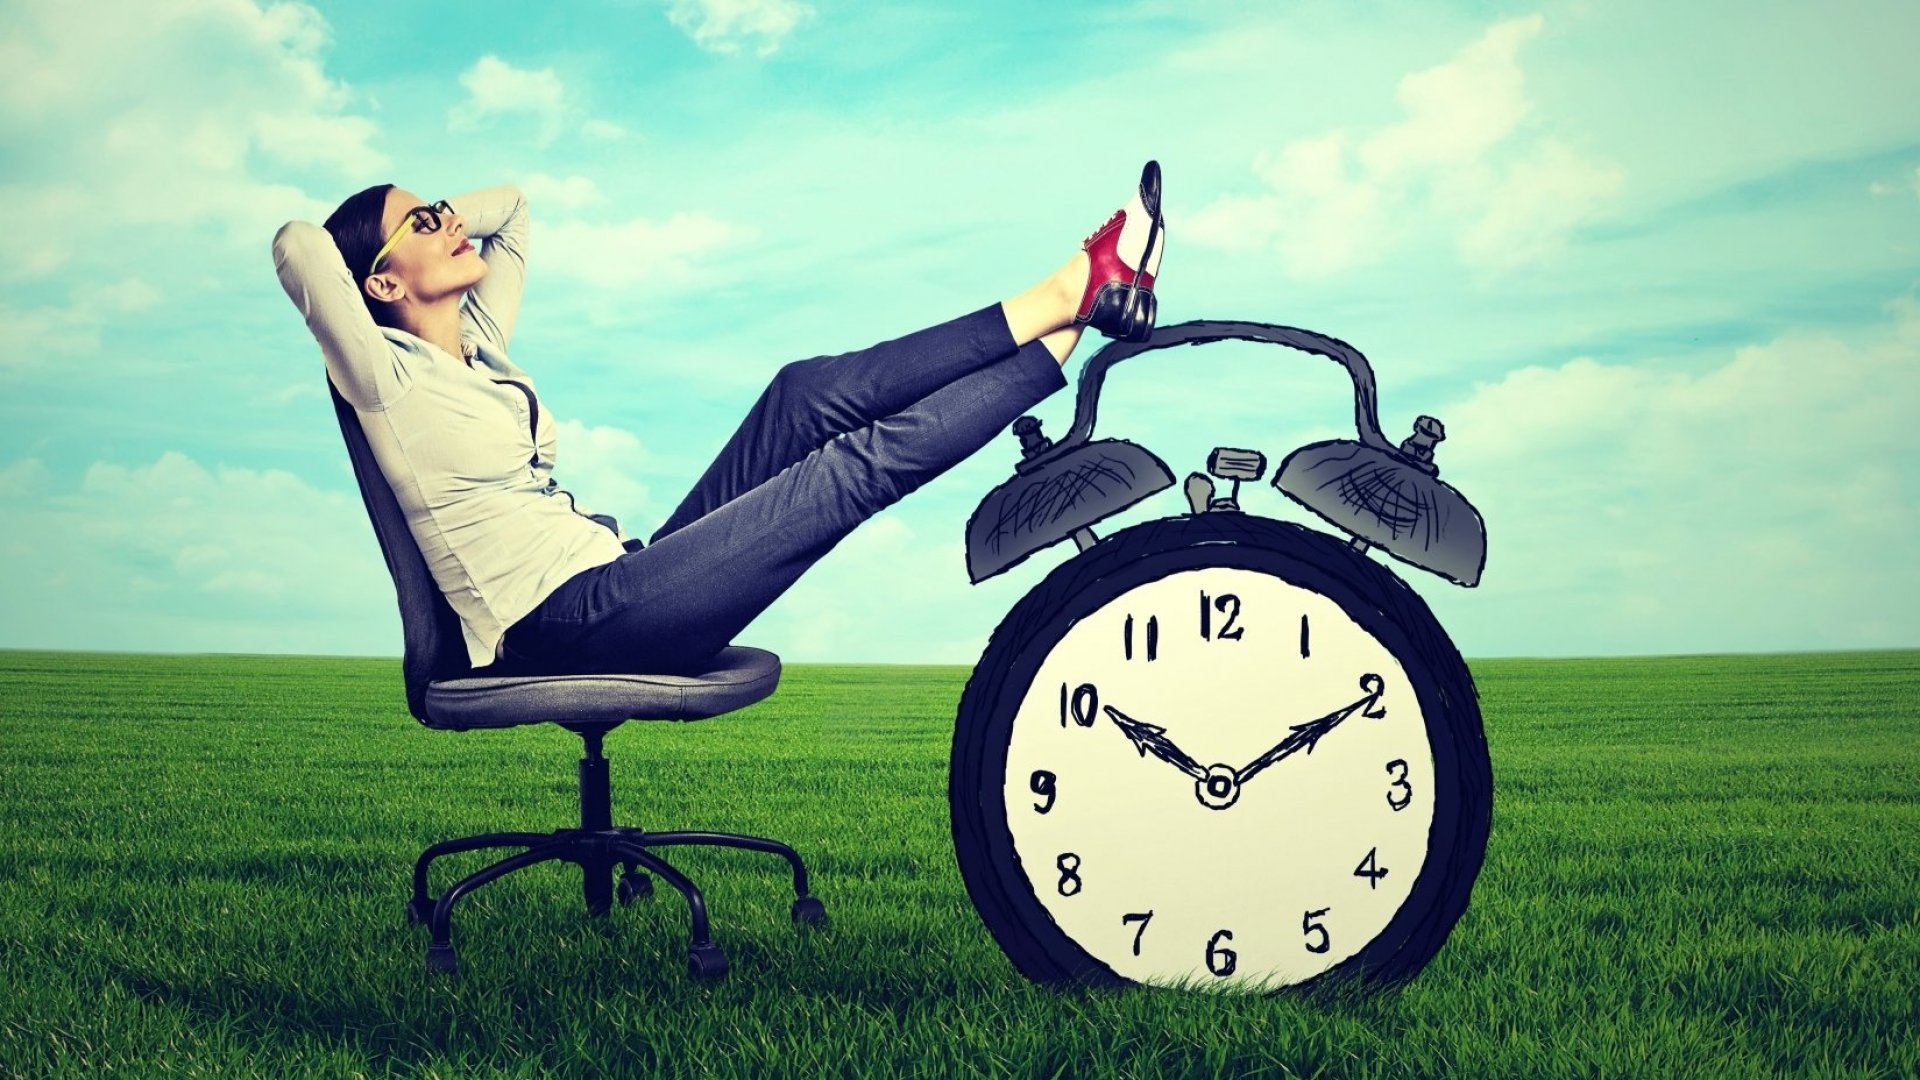 4 Crucial Things You Should Do to Waste Less Time and Be More Productive